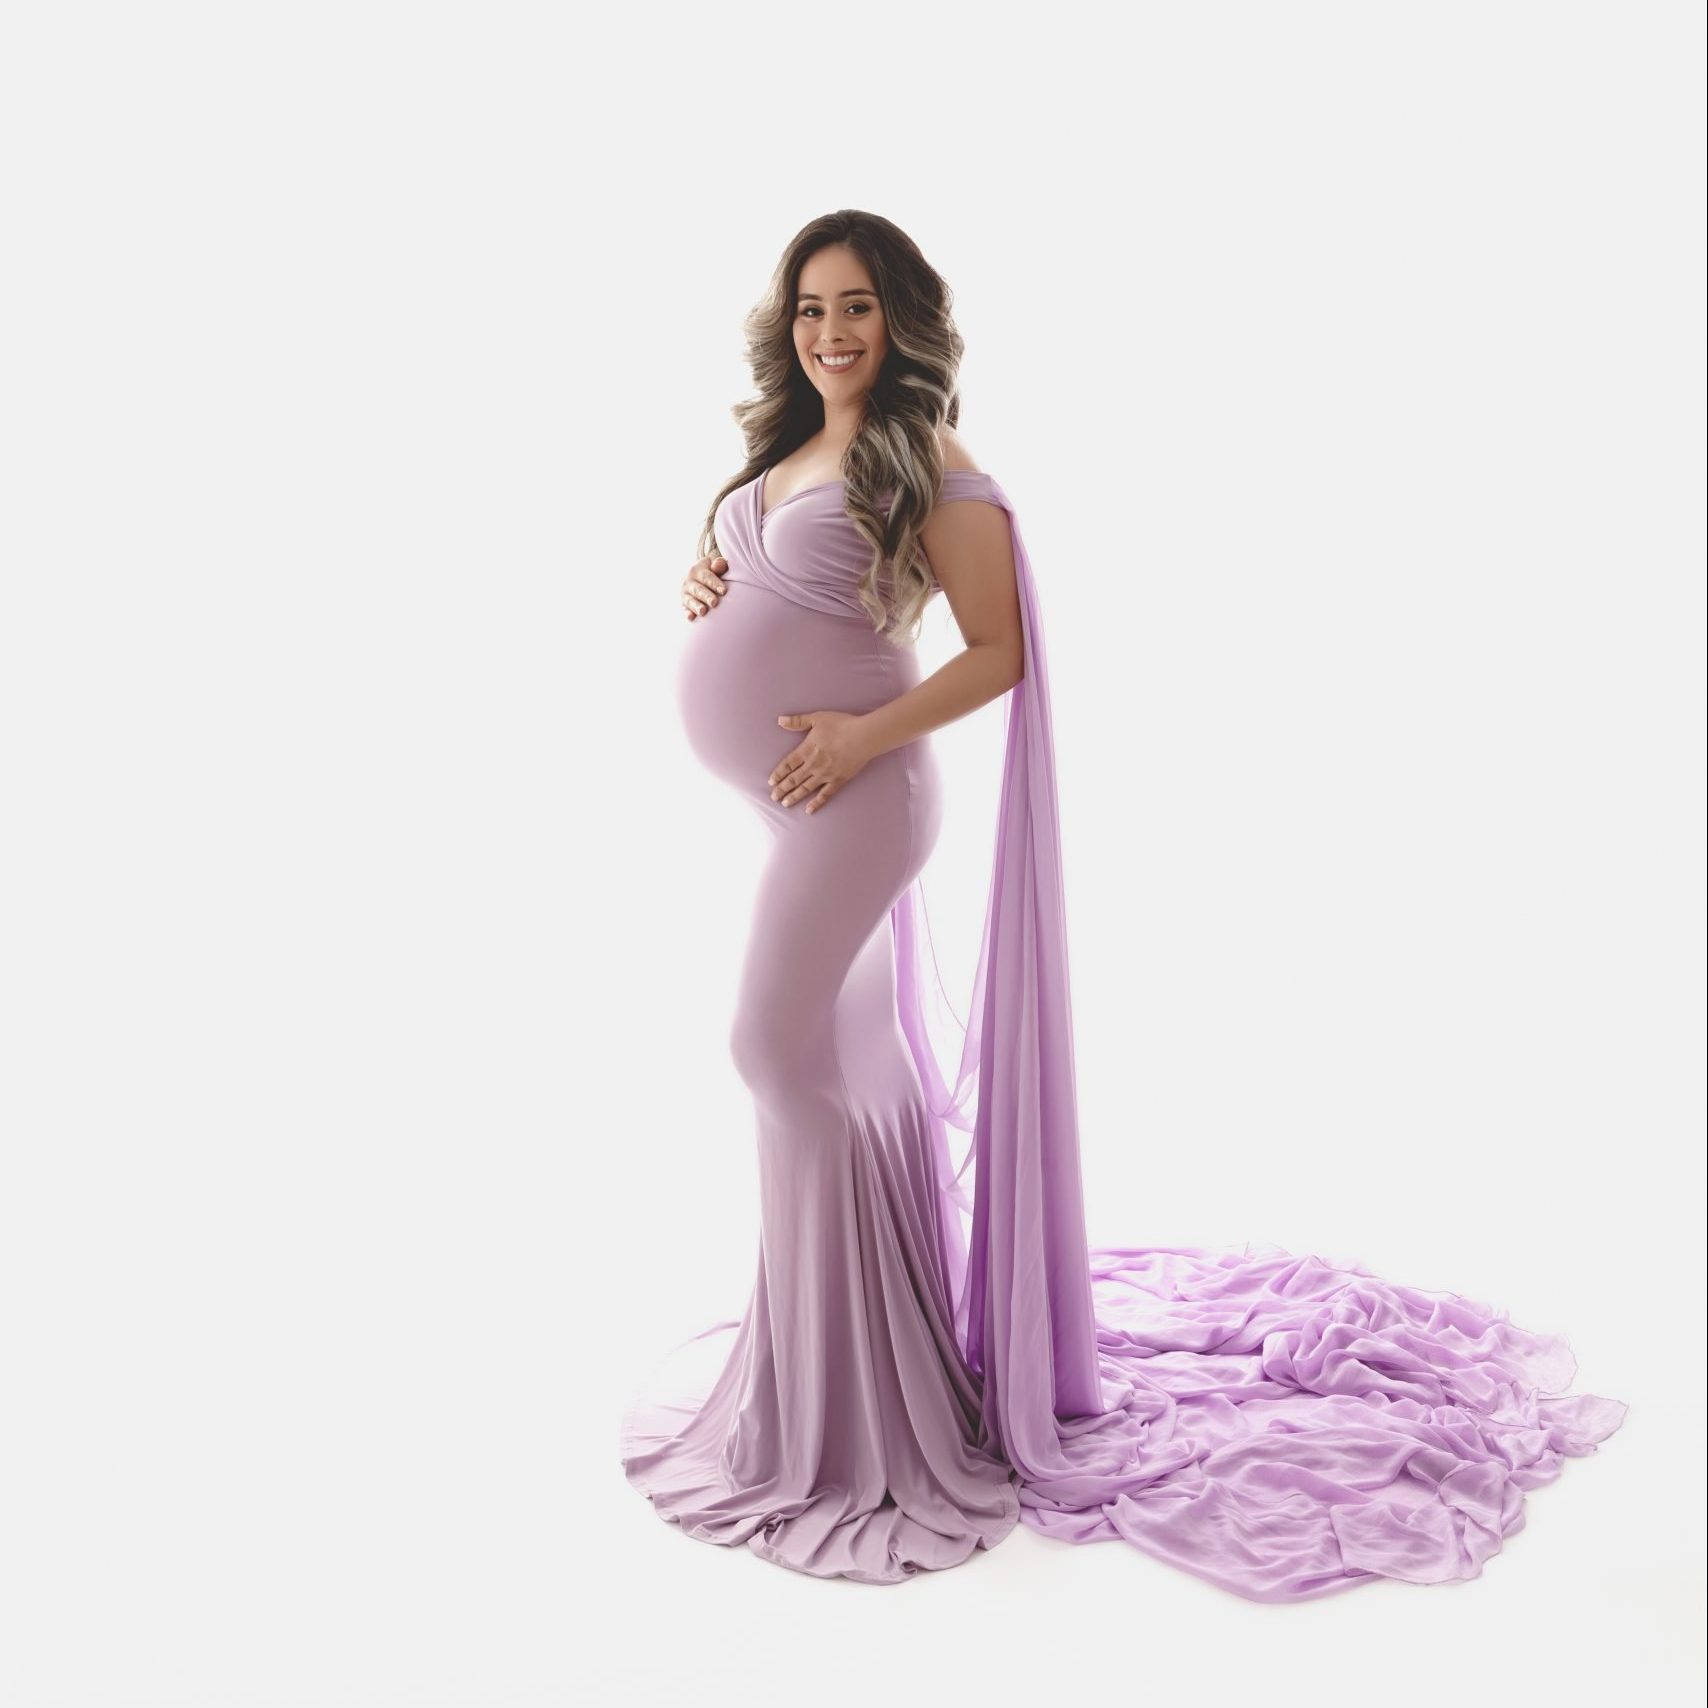 Serene Maternity Gown, Miss Madison Boutique